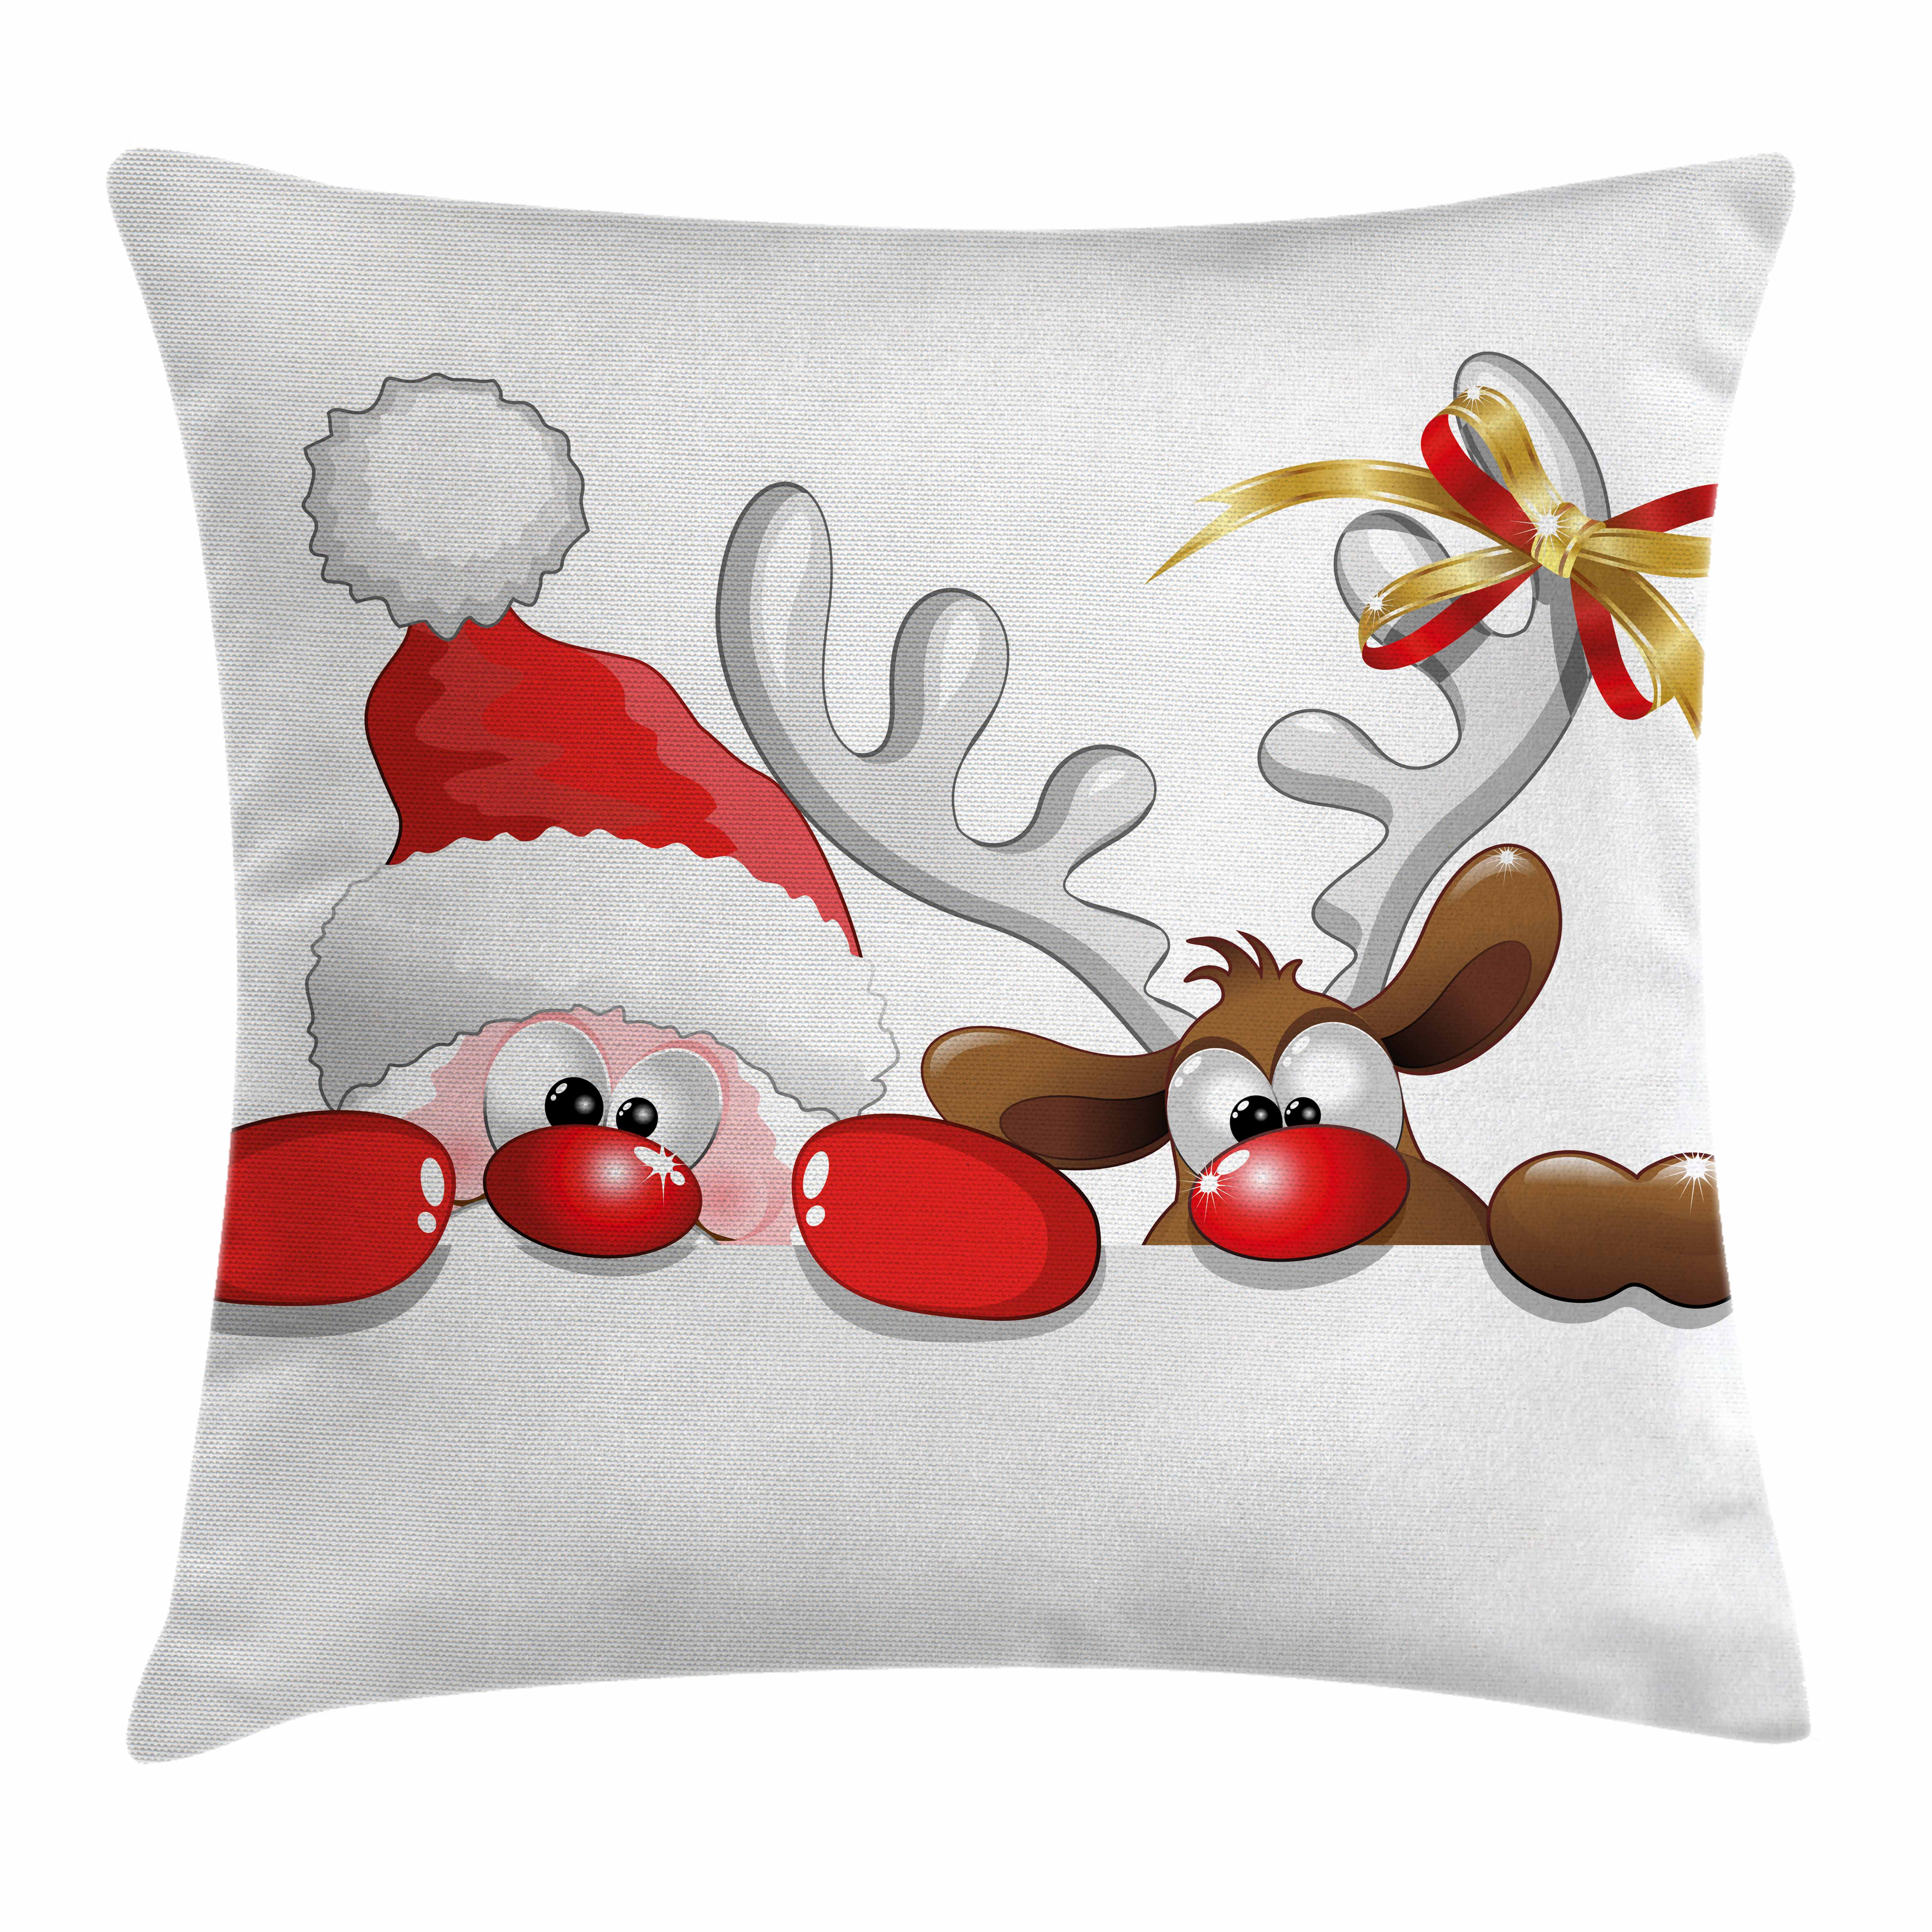 Christmas Throw Pillow Cushion Cover, Funny Christmas Santa Claus and Reindeer Peeking Cartoon Style Humor Kids, Decorative Square Accent Pillow Case, 16 X 16 Inches, Red Brown Silver, by Ambesonne